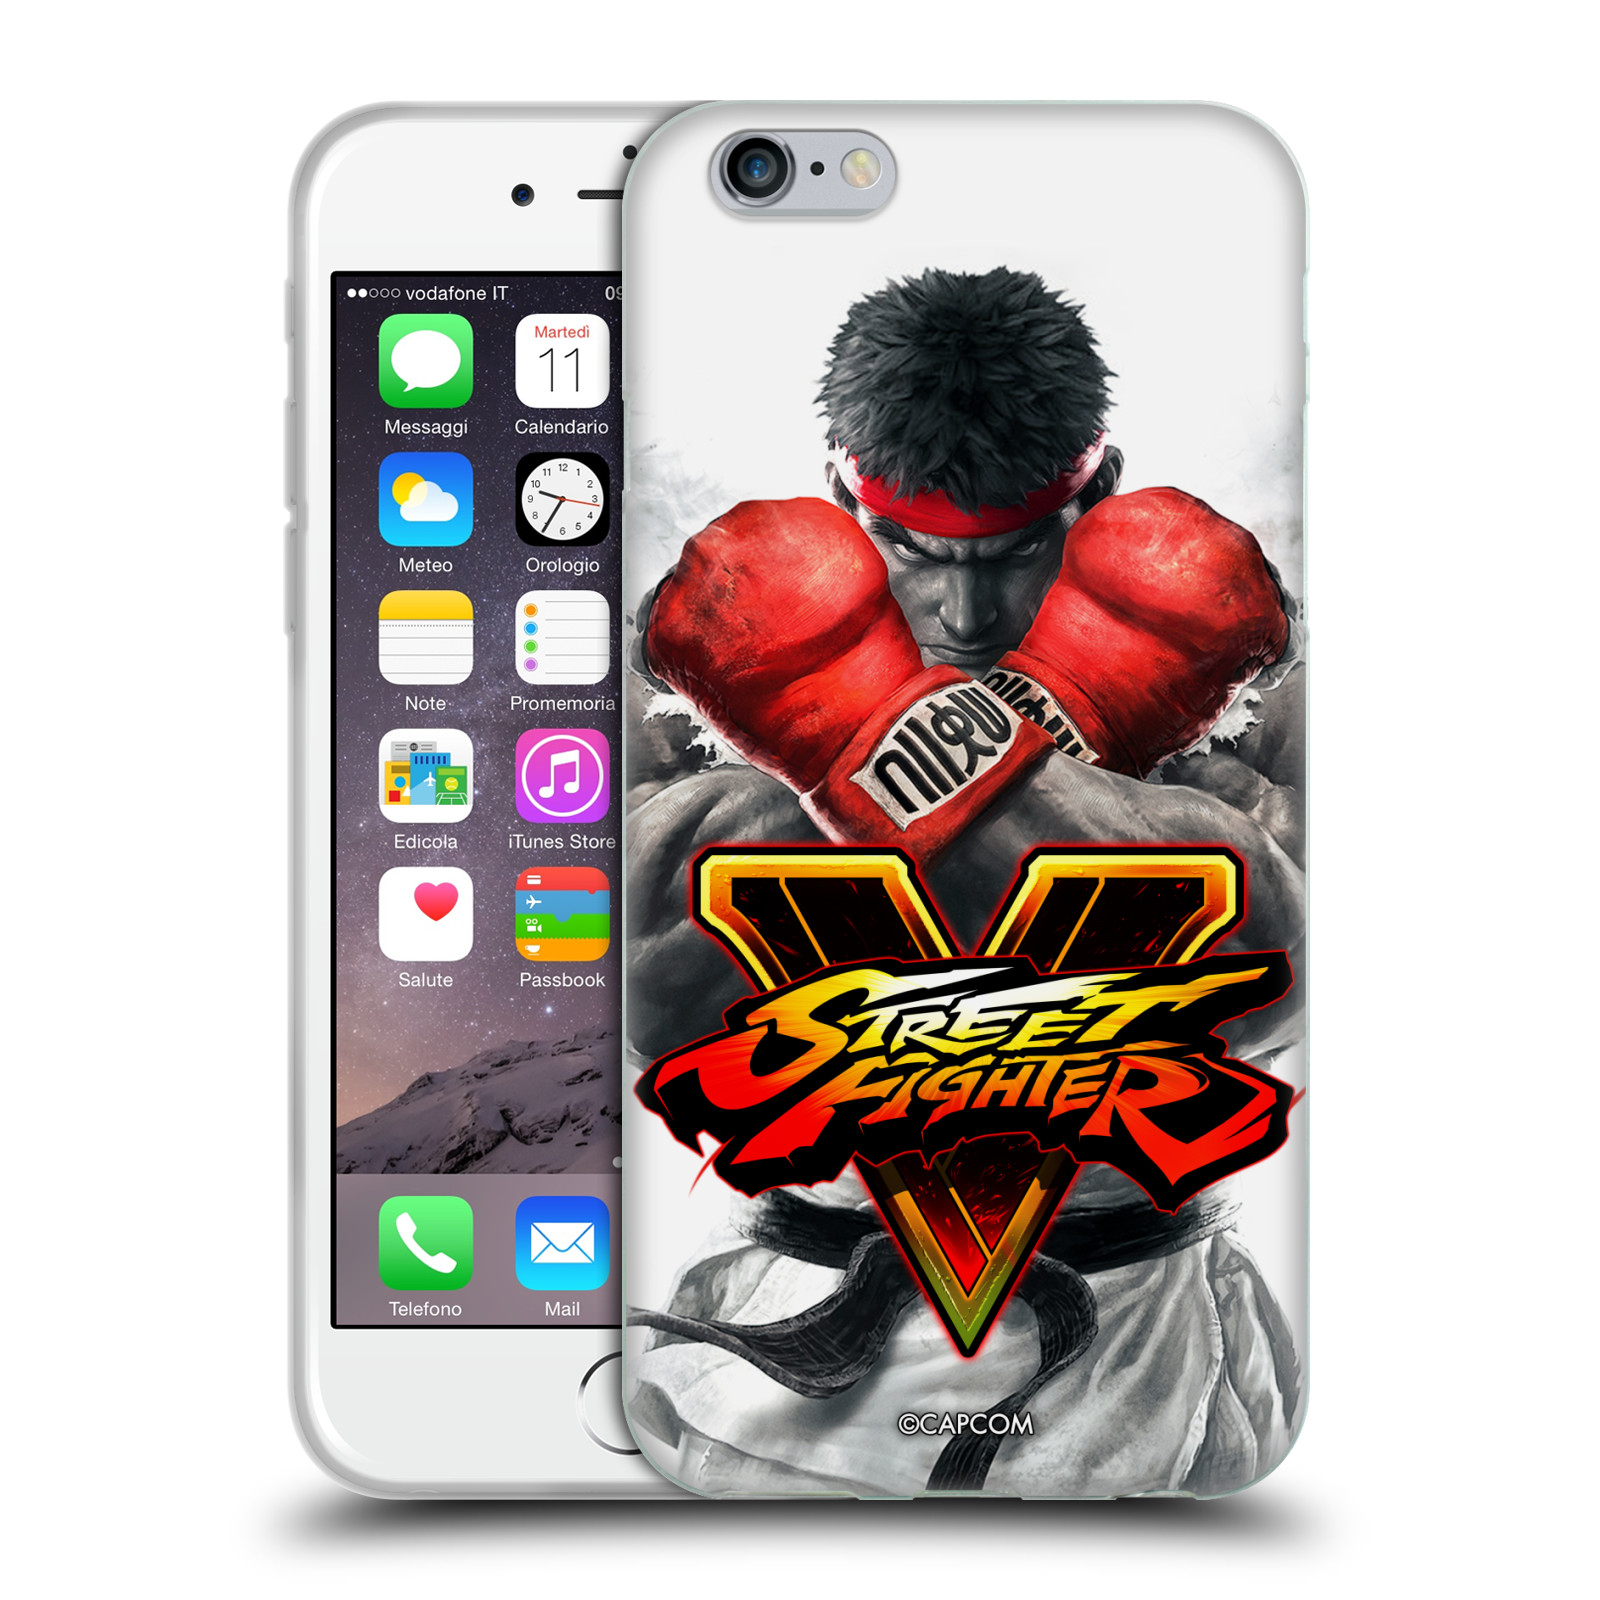 HEAD CASE silikonový obal na mobil Apple Iphone 6/6S oficiální kryt STREET FIGHTER Boxer Ryu